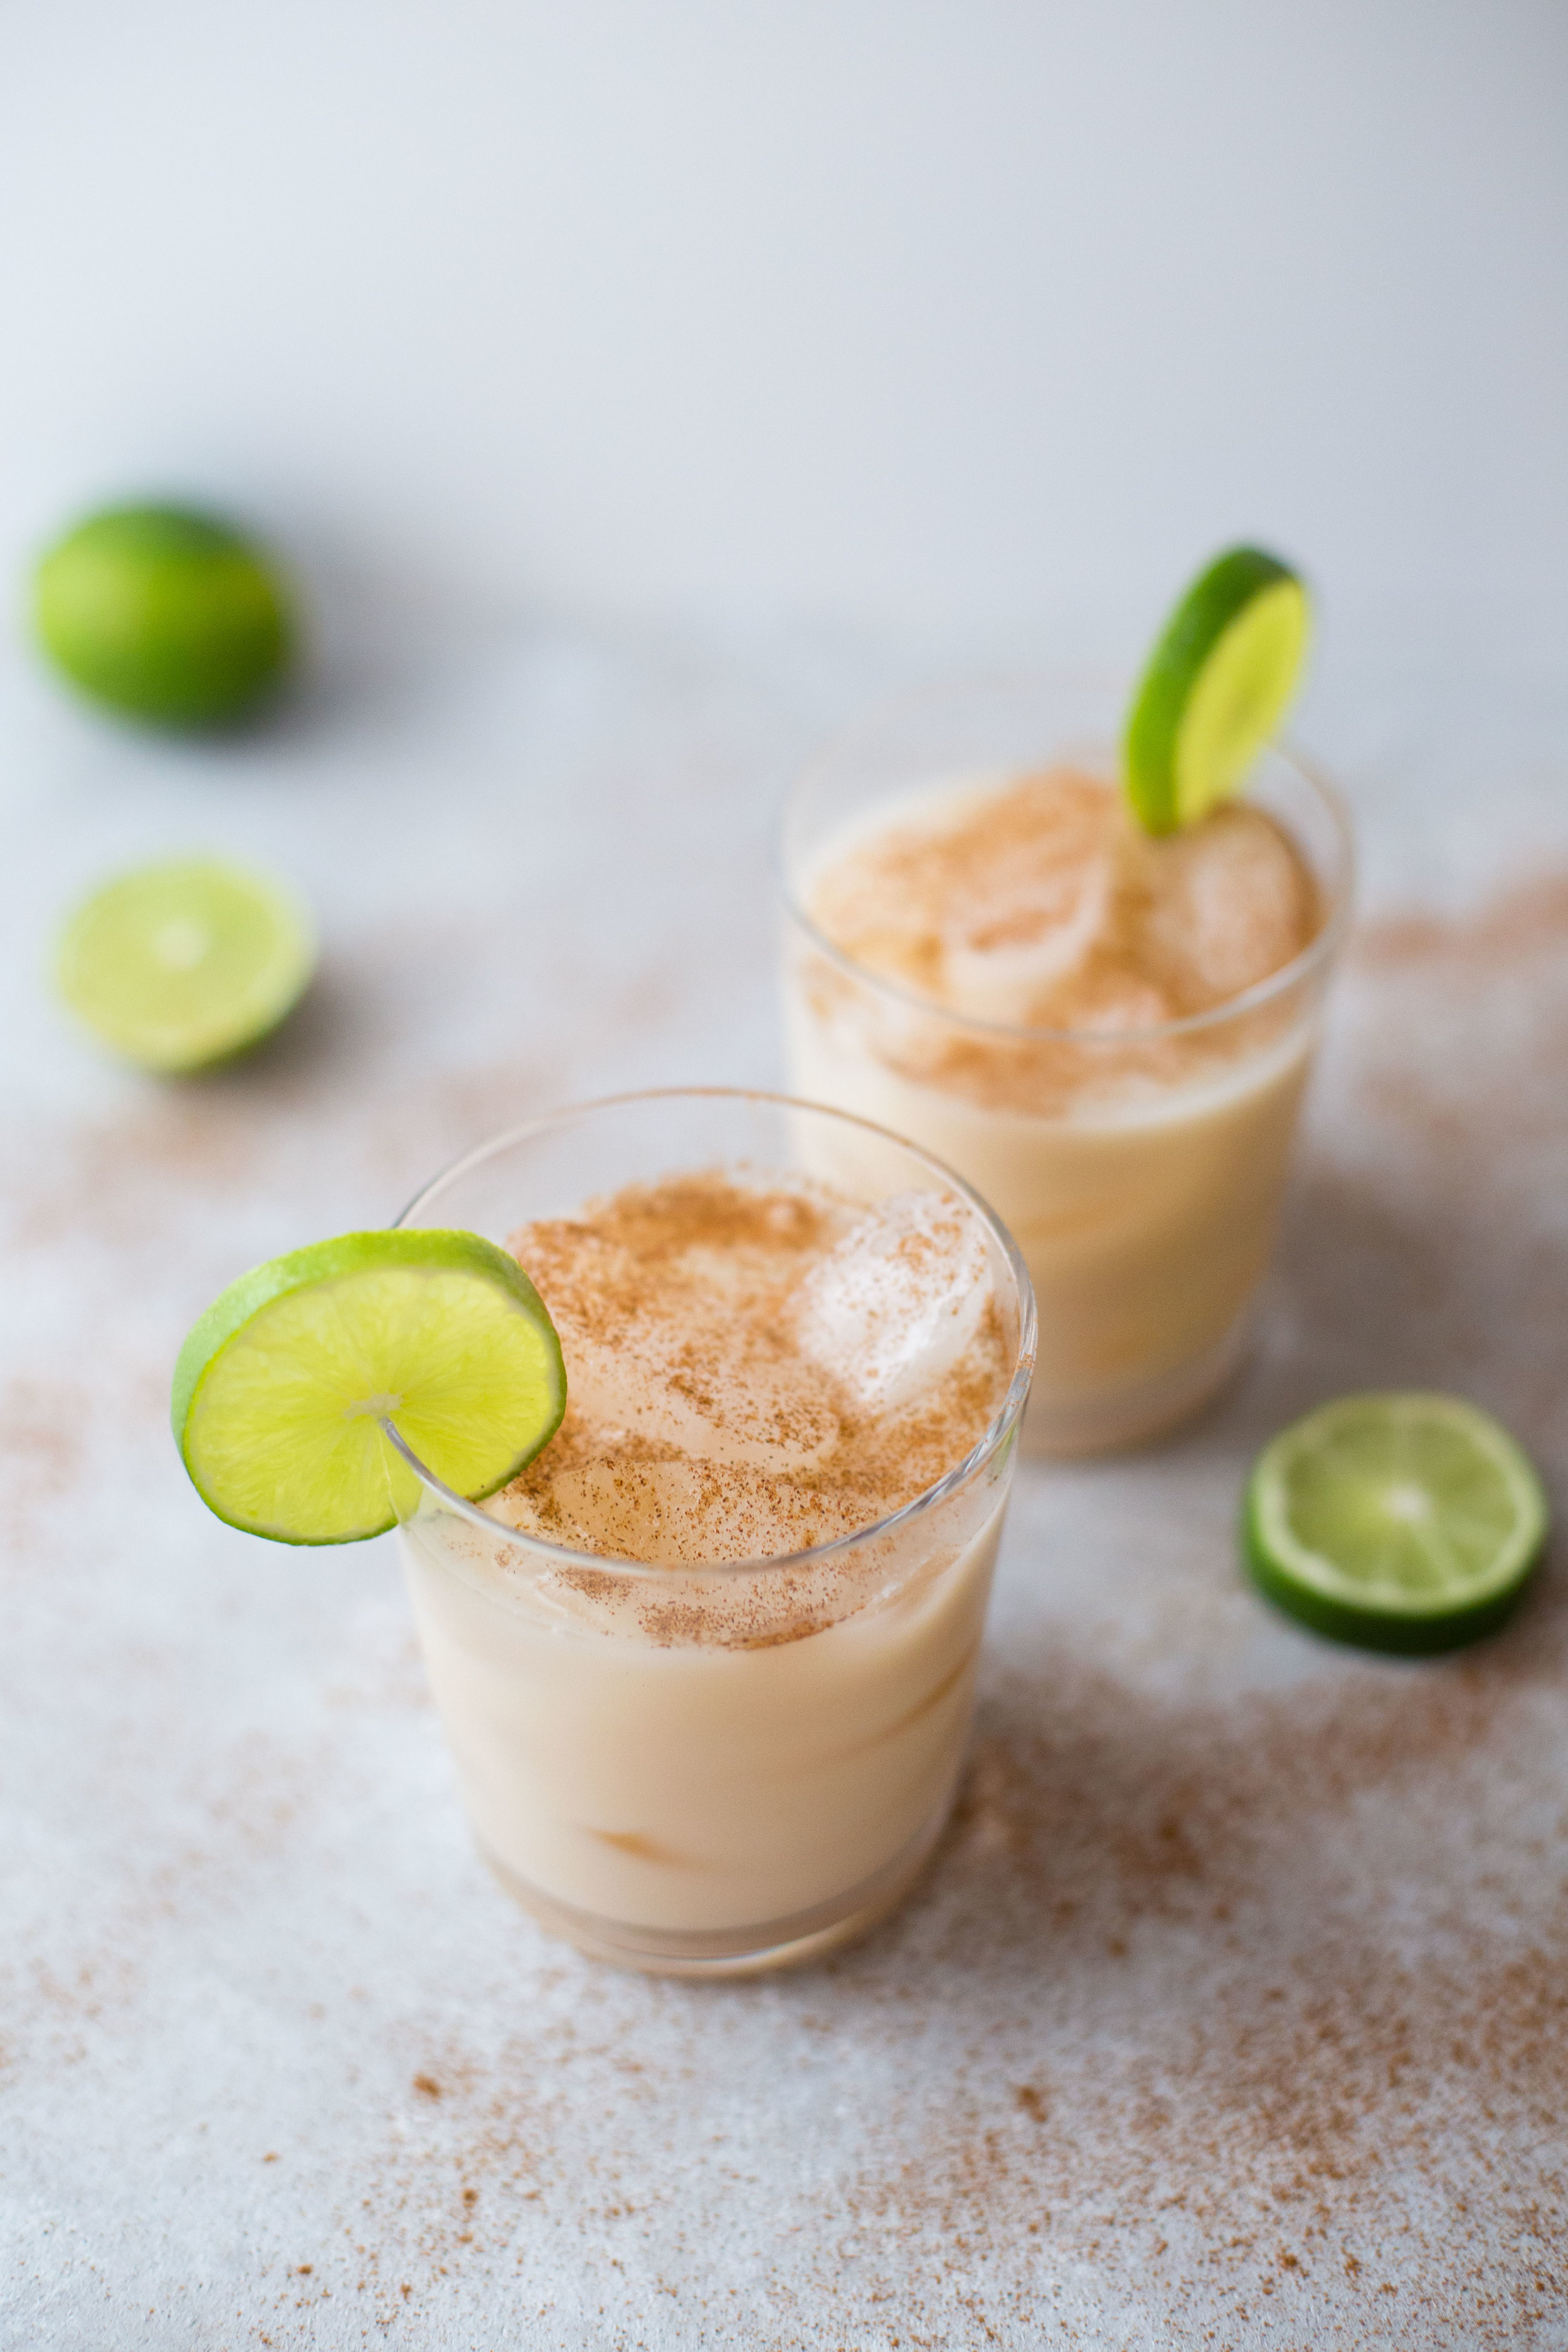 This recipe for horchata spiked with tequila will get your next party started.